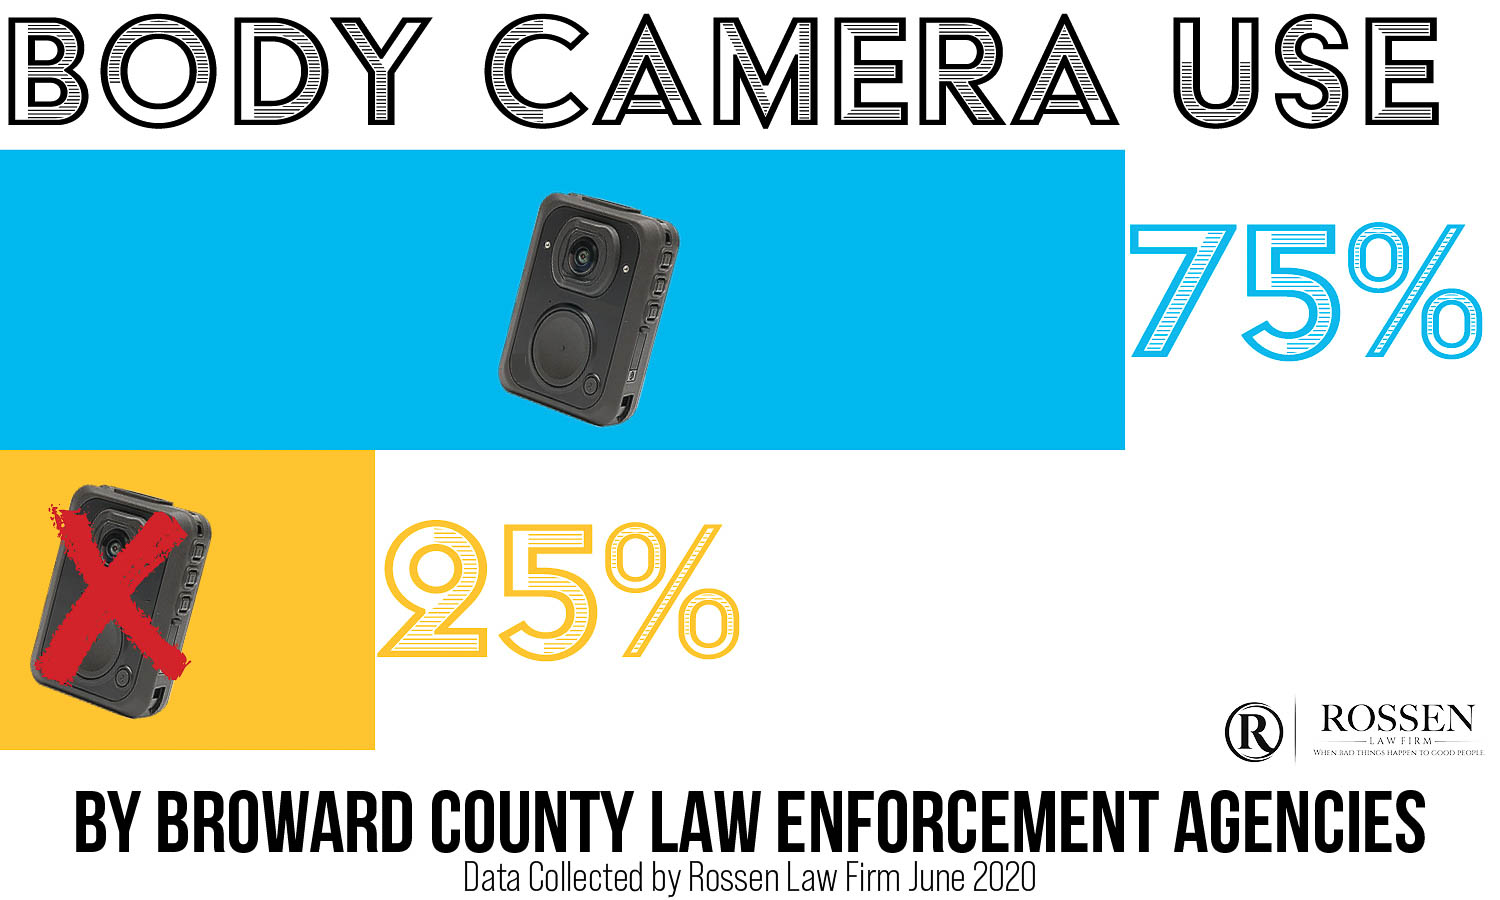 Body Camera use in Fort Lauderdale, Broward County and South Florida as told by Criminal Defense Attorneys. Three-Fourths of Broward-area departments use body cams, while one-forth of departments do't use body cameras.